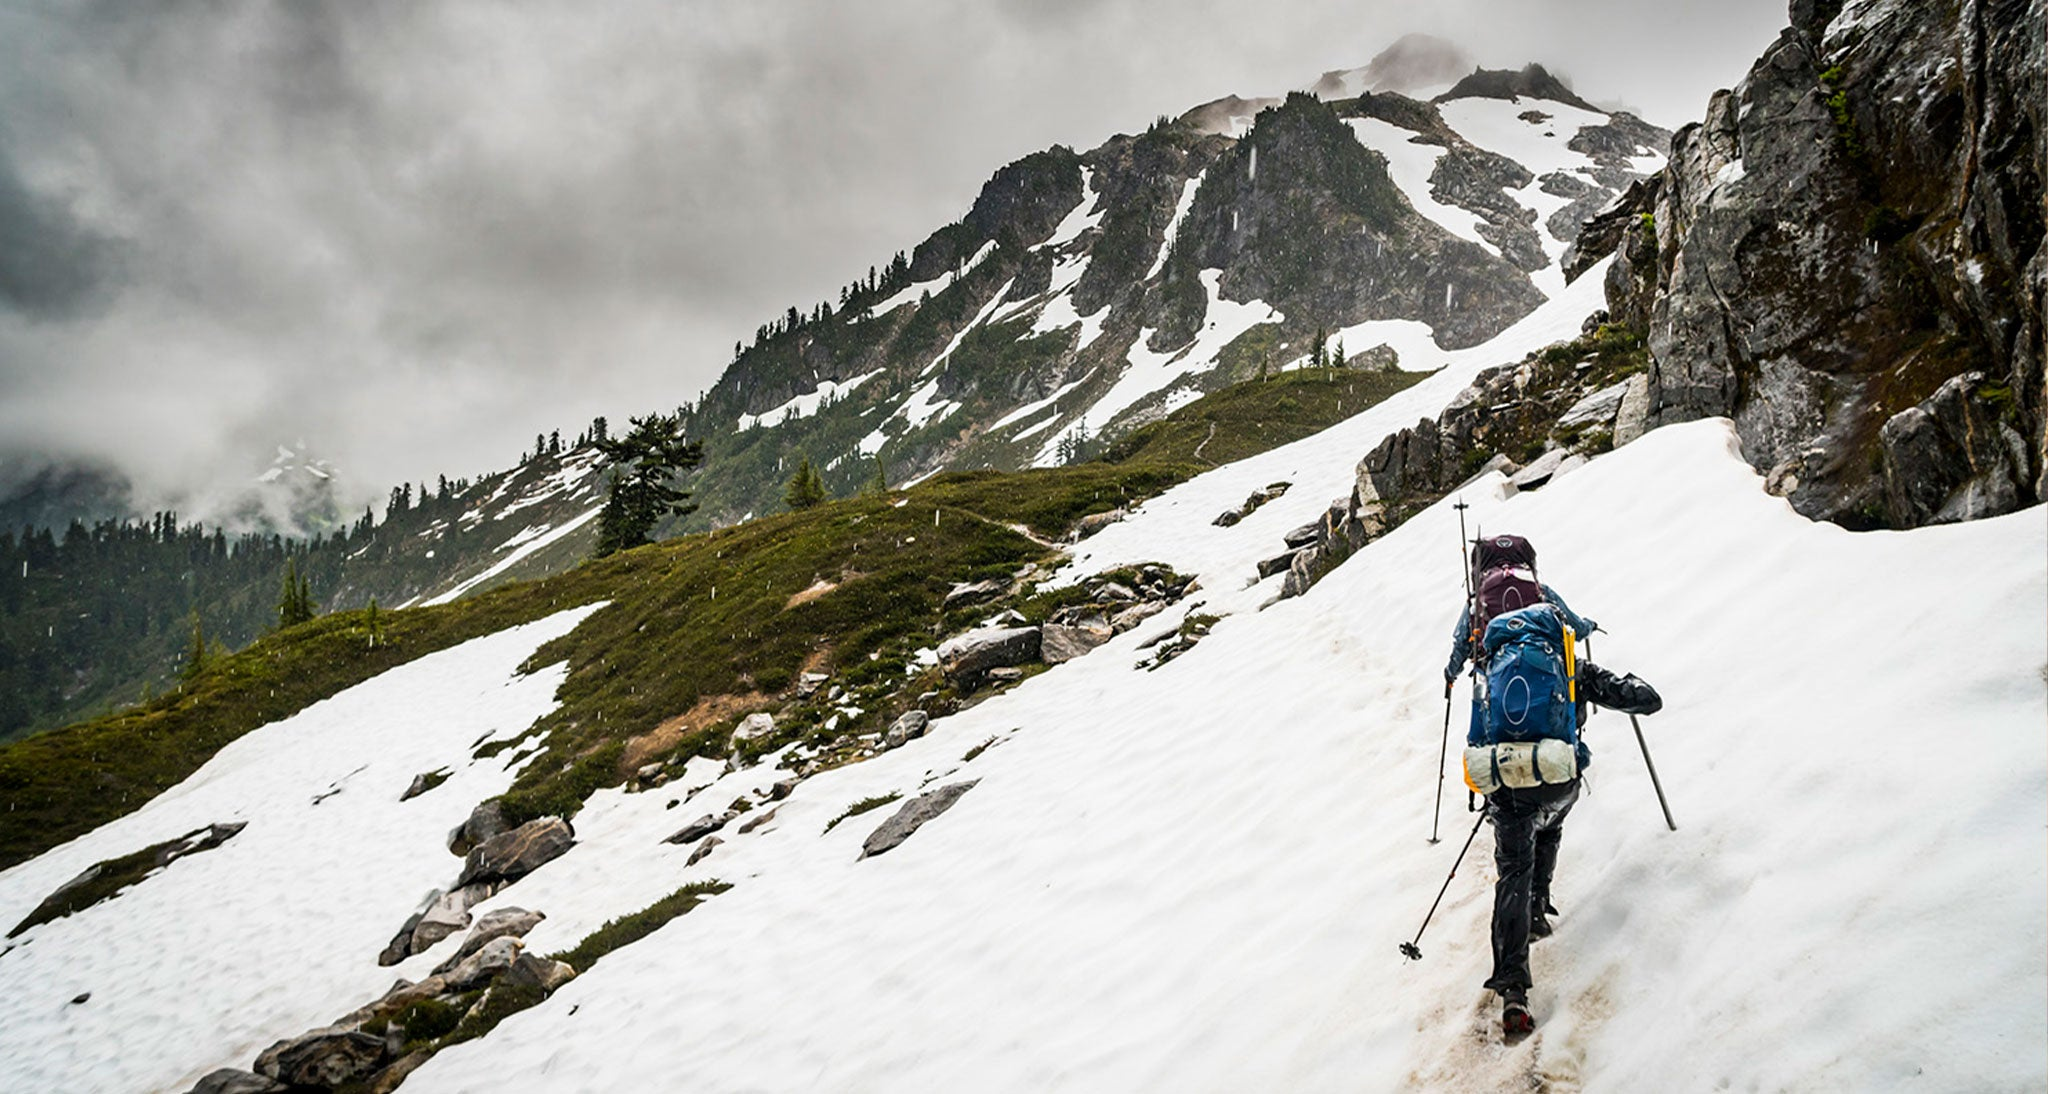 Dicey Call.  Southbound Pacific Crest Trail hikers ascend  Fire Creek Pass in July in the Glacier Peak Wilderness in the Washington Cascades.  Precipitation from cumulus is a cold rain process.  Even in summer, precipitation from cumulus cells starts as snow that melts to rain in the column of warm air below.  At high elevation, 6000' here, all the precipitation fell as snow even in the 3rd week of July.   Evaporative cooling from large cumulus cells can be strong enough to drop temperatures 15-20 degrees in a 1000'.  An hour before crossing this pass we were in shorts and T-shirts.  When reaching the pass, evaporative cooling created a stratus cloud and was accompanied by strong winds funneling through the pass to where the trail was totally lost in the snow with visibility of around 100'.  Had it not been for navigational skills we could have been lost for a period of time in a dangerous hypothermic environment.